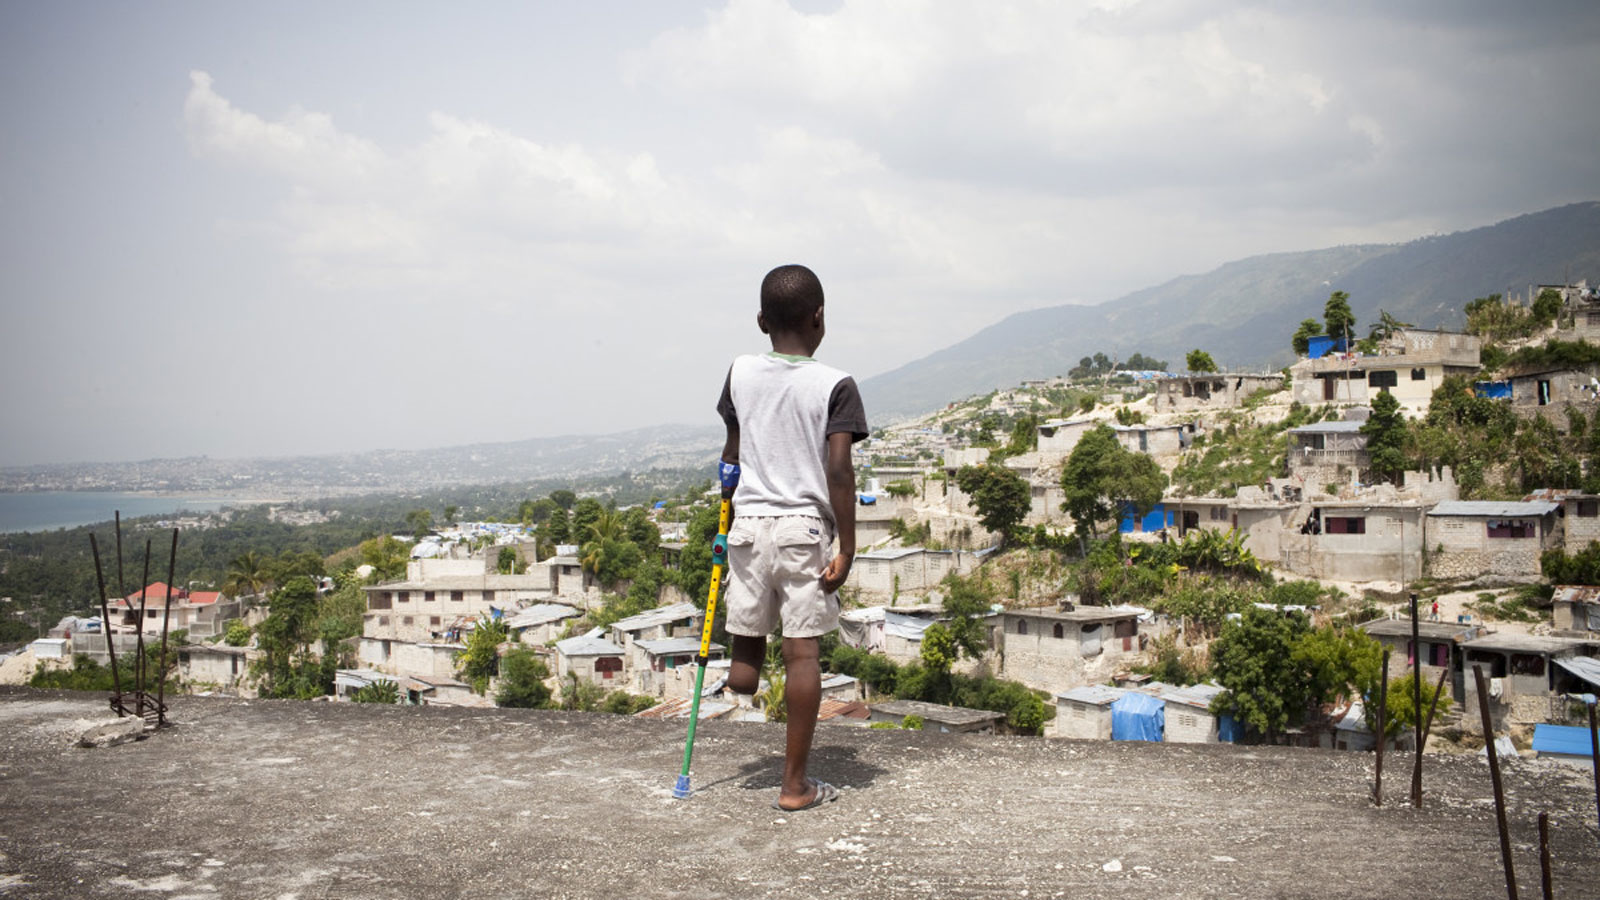 Balnave Ulysse near the tent where he lives in Haiti